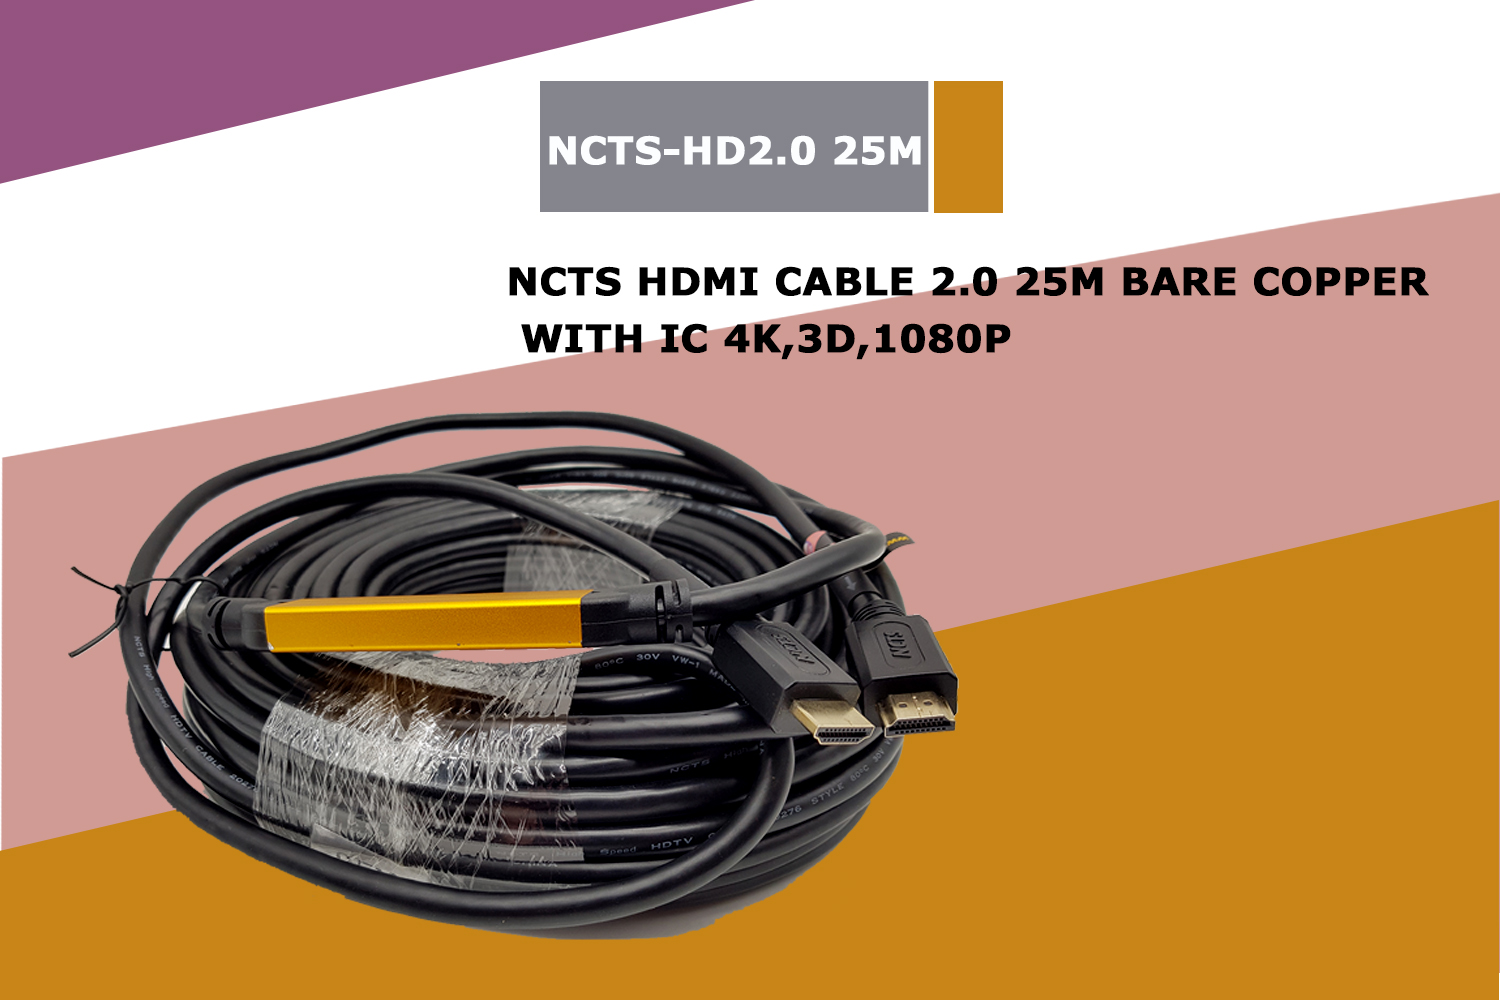 HDMI CABLE 2.0 25M 4K,3D,1080P WITH IC